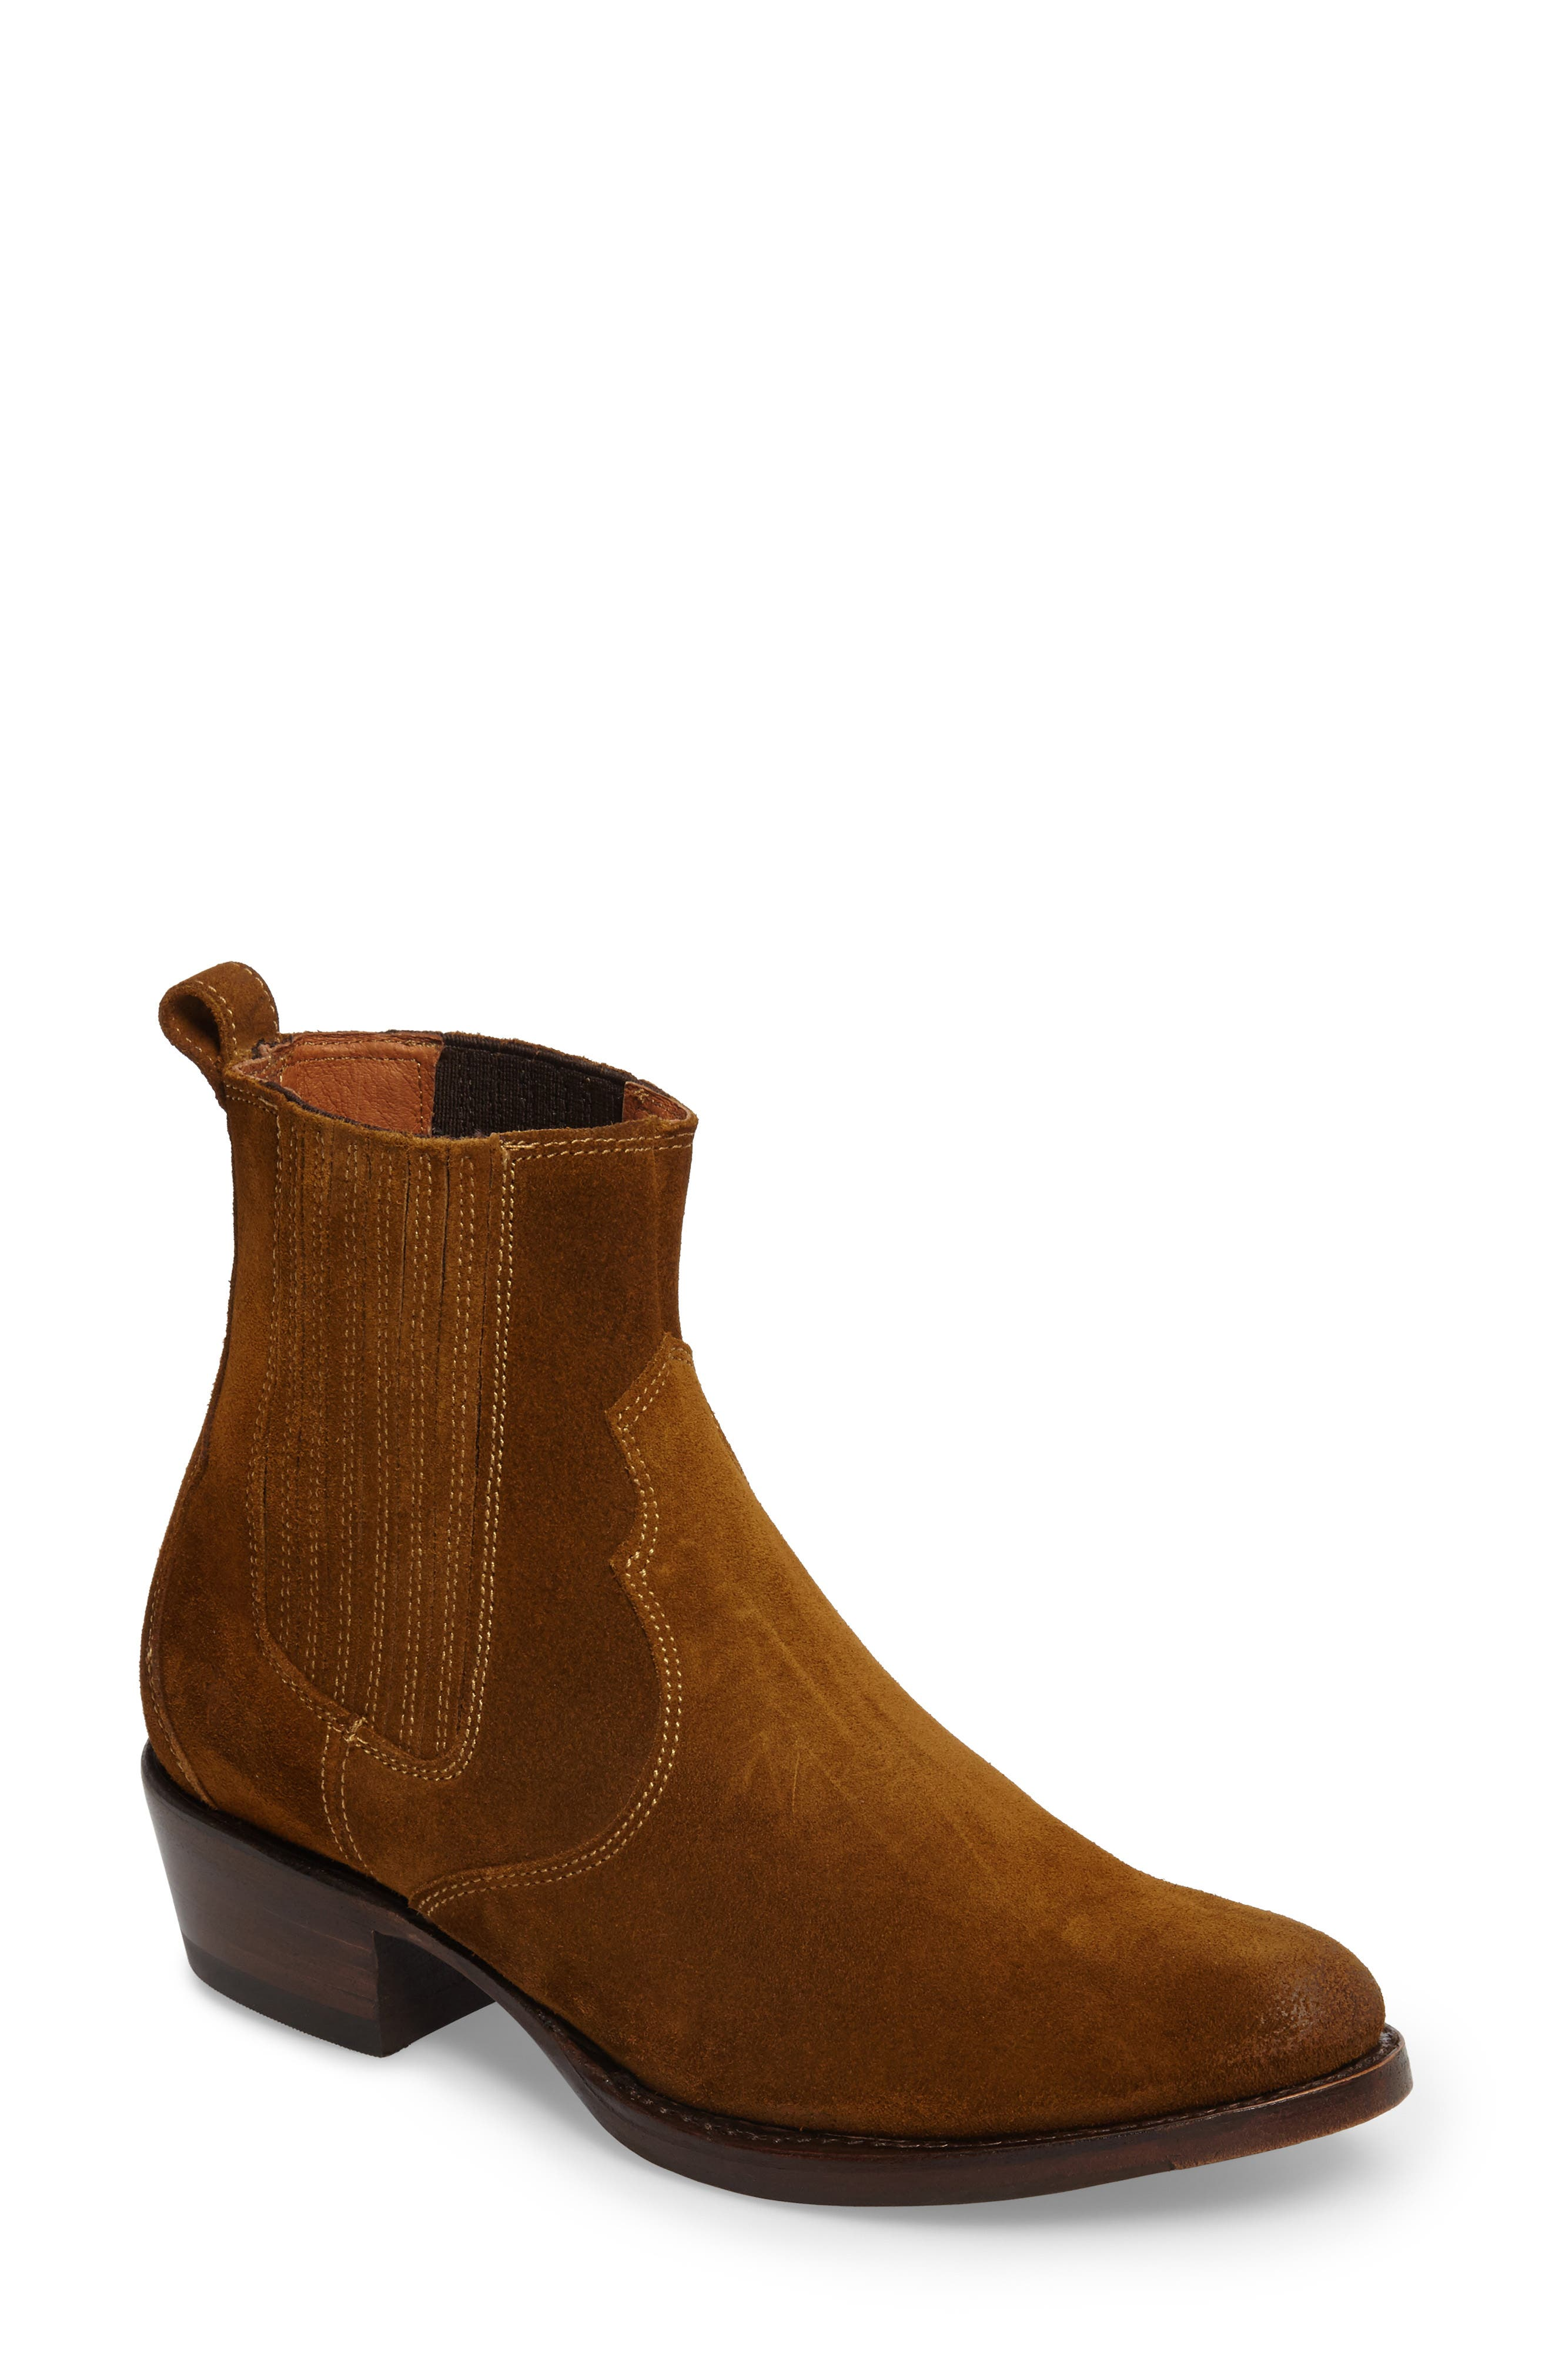 Diana Chelsea Boot,                         Main,                         color, Wheat